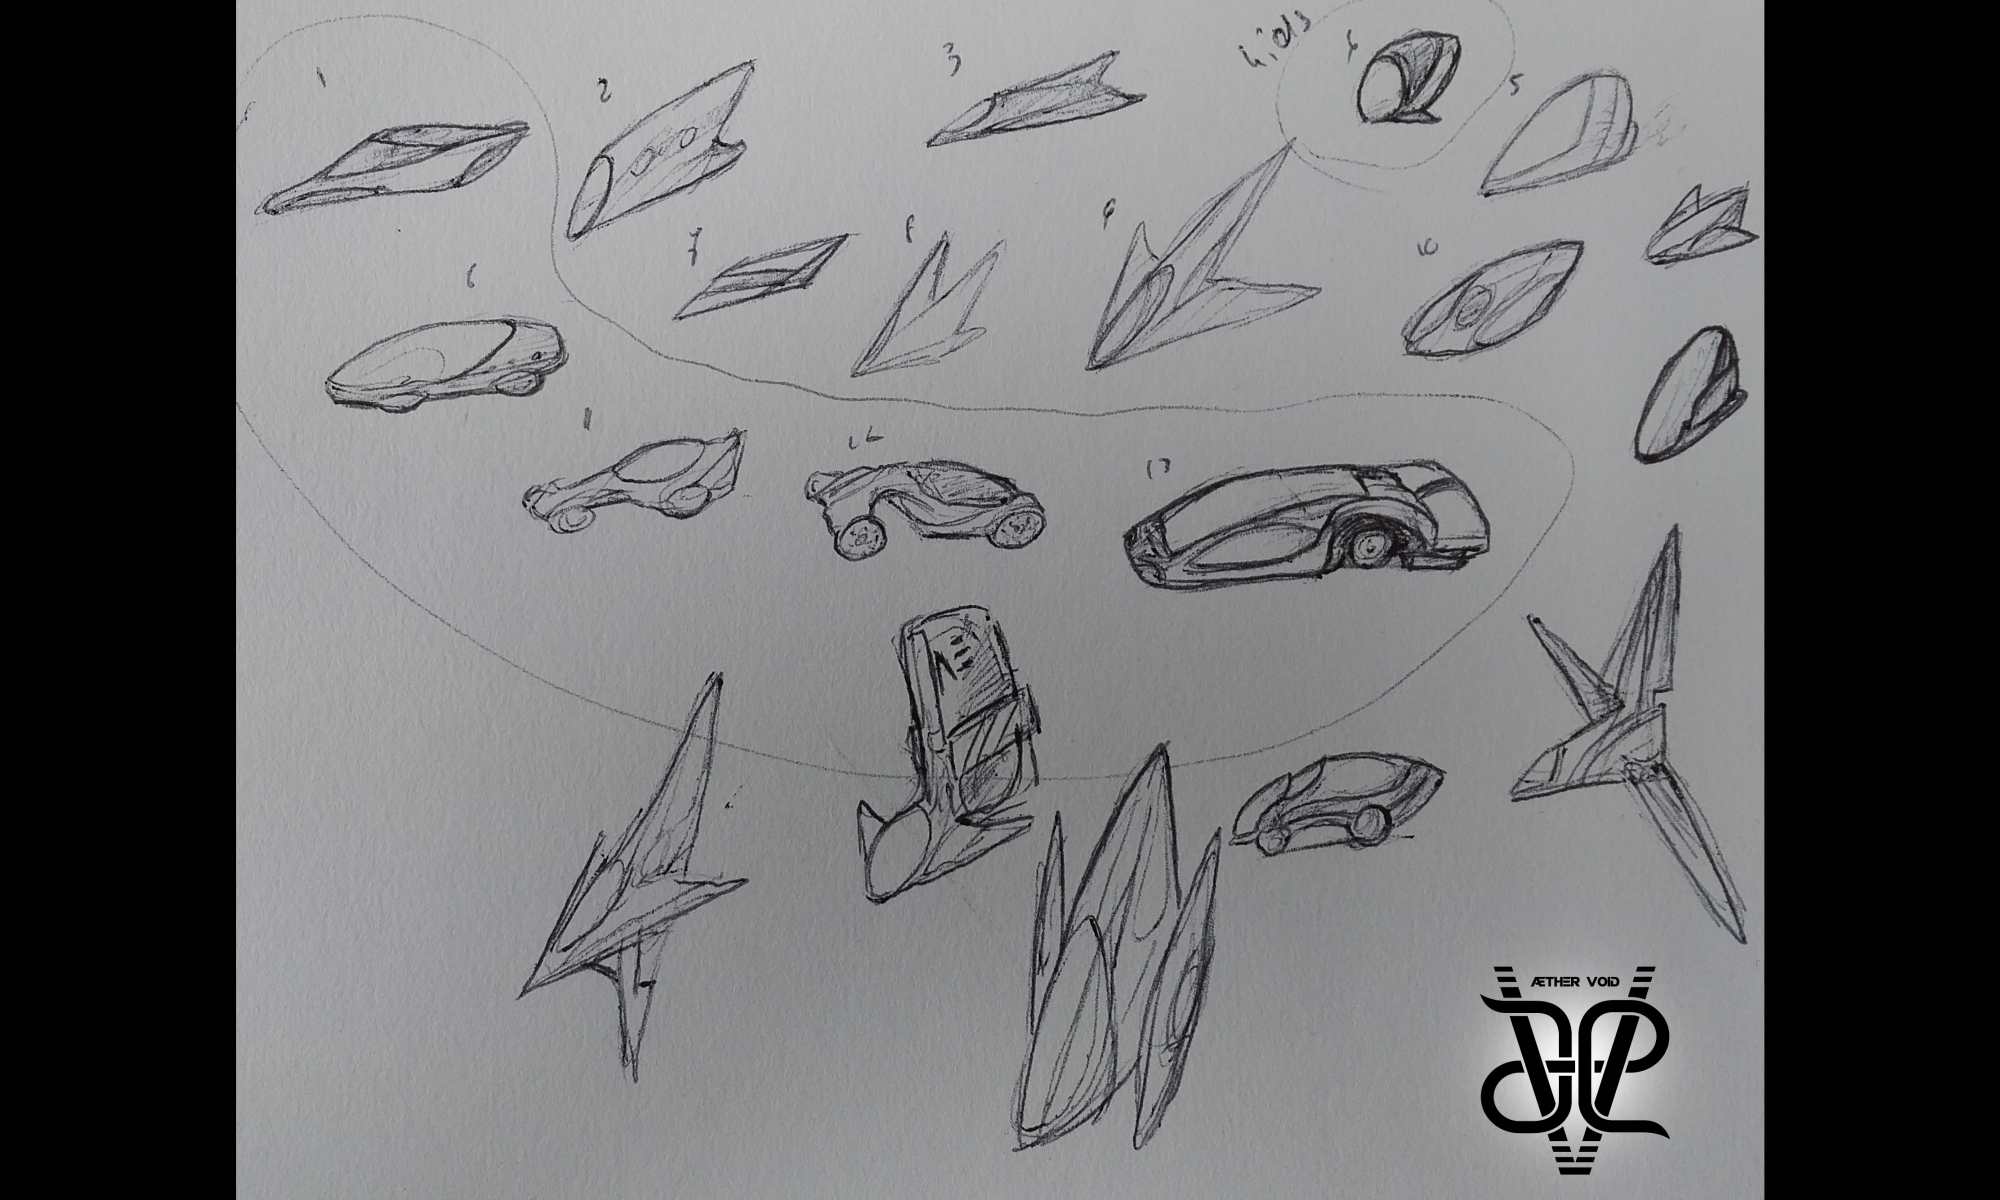 Flying car concepts for Sleeping Dragon, the Æther Void sci world.